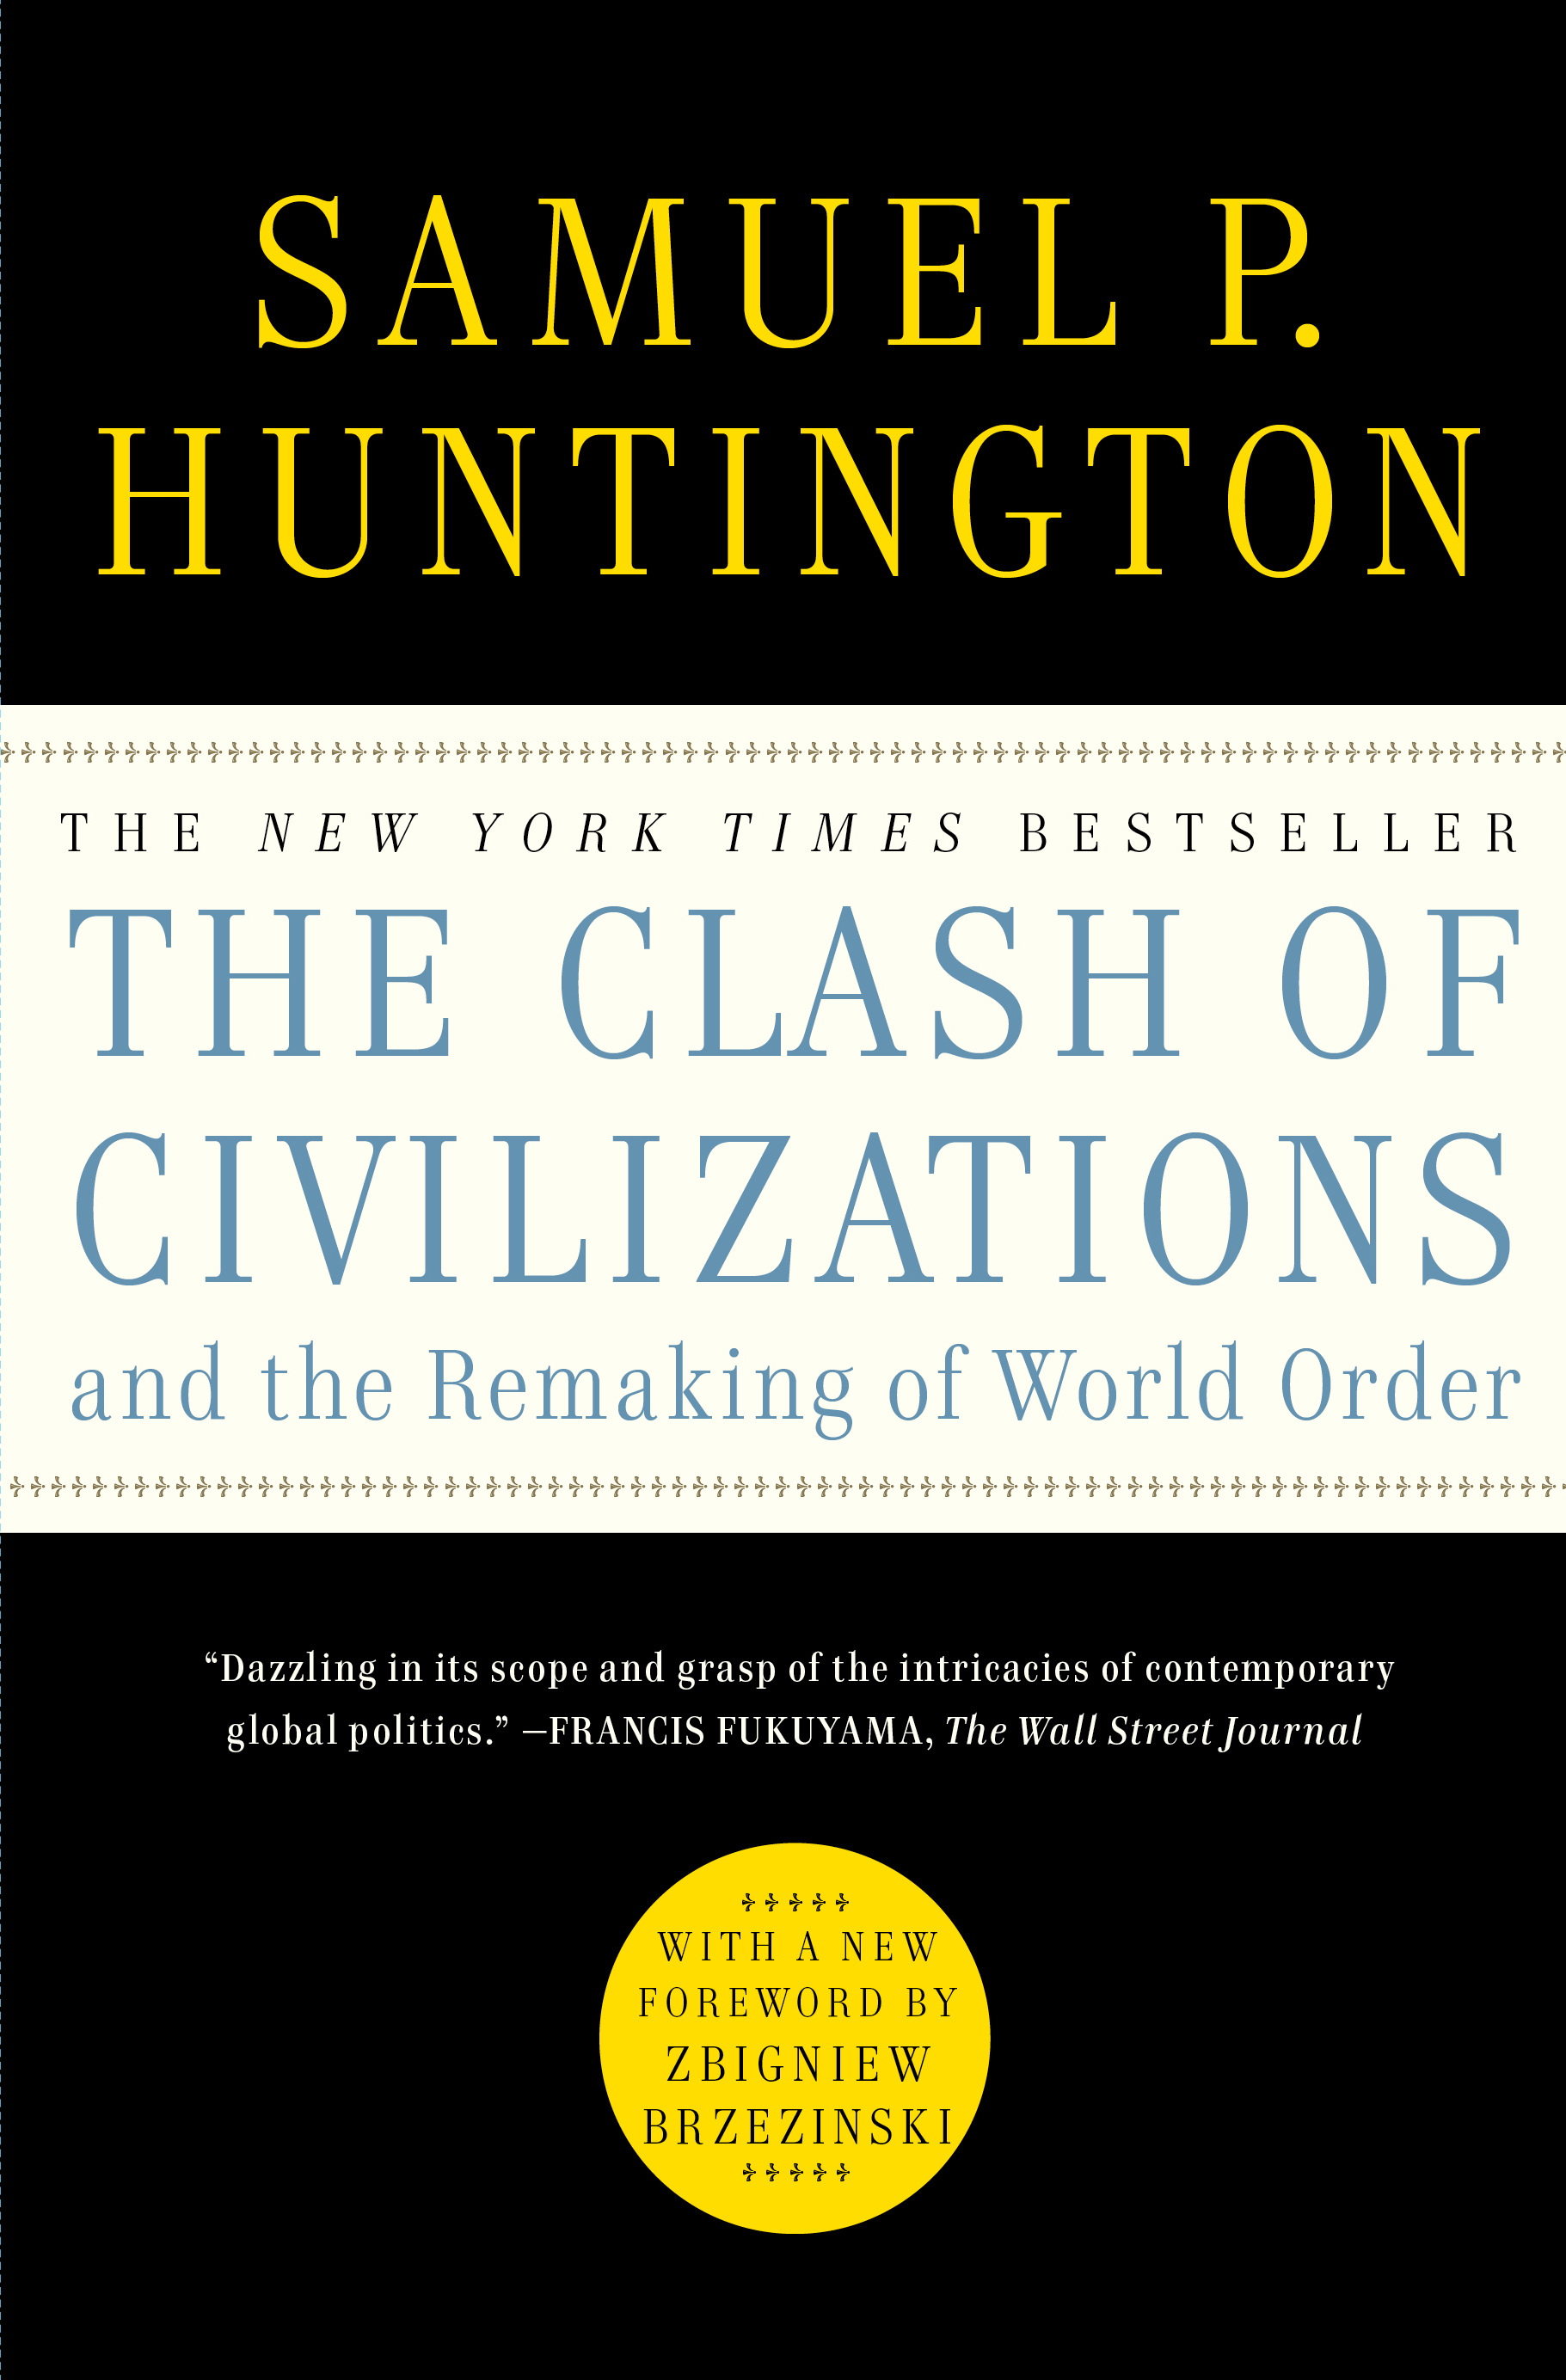 an analysis of clash civilization and remaking of world order by samuel p huntington Read the clash of civilizations and the remaking of world order by samuel p huntington by samuel p huntington for free with a 30 day free trial read ebook on the web, ipad, iphone and android.